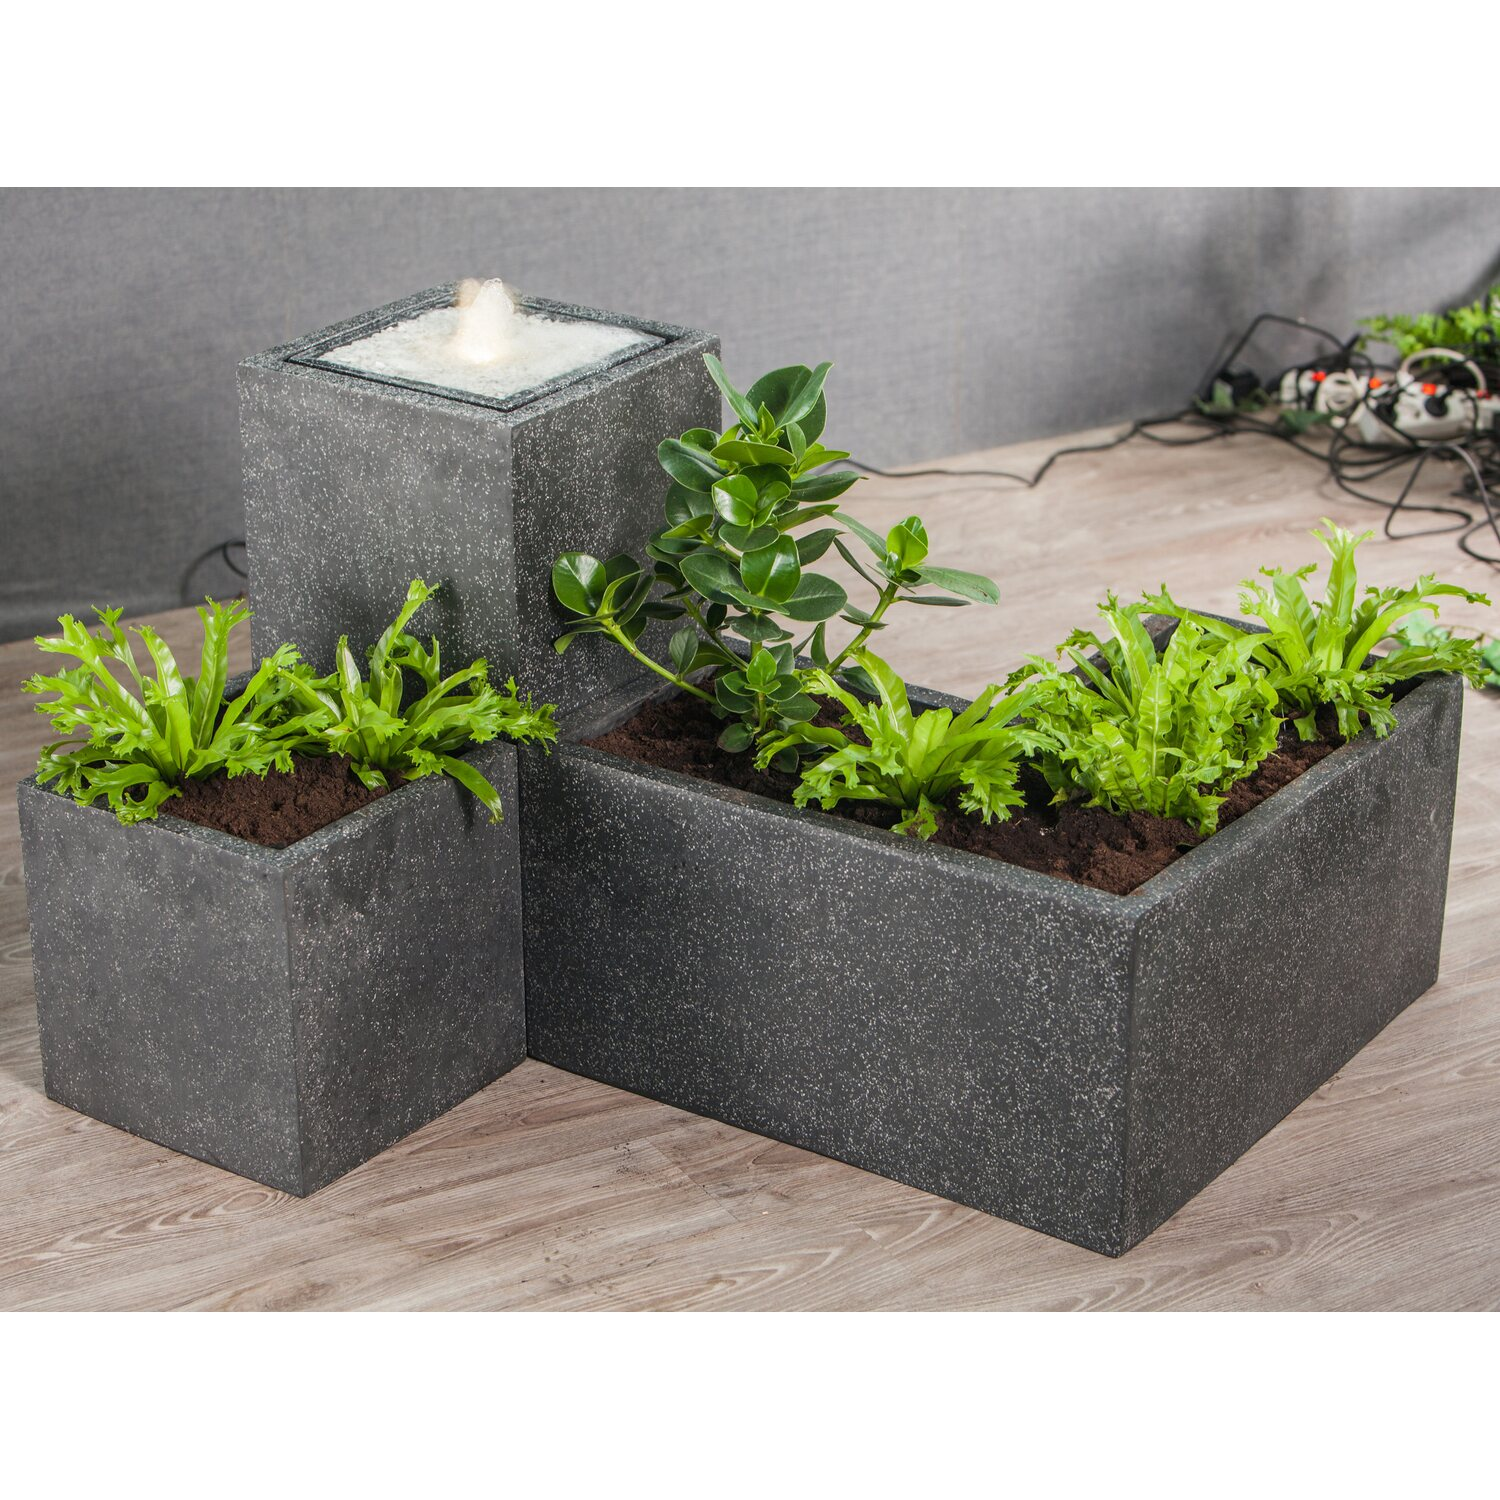 heissner terrassenbrunnen set plantana gro mit led 35 x 35 x 68 cm kaufen bei obi. Black Bedroom Furniture Sets. Home Design Ideas